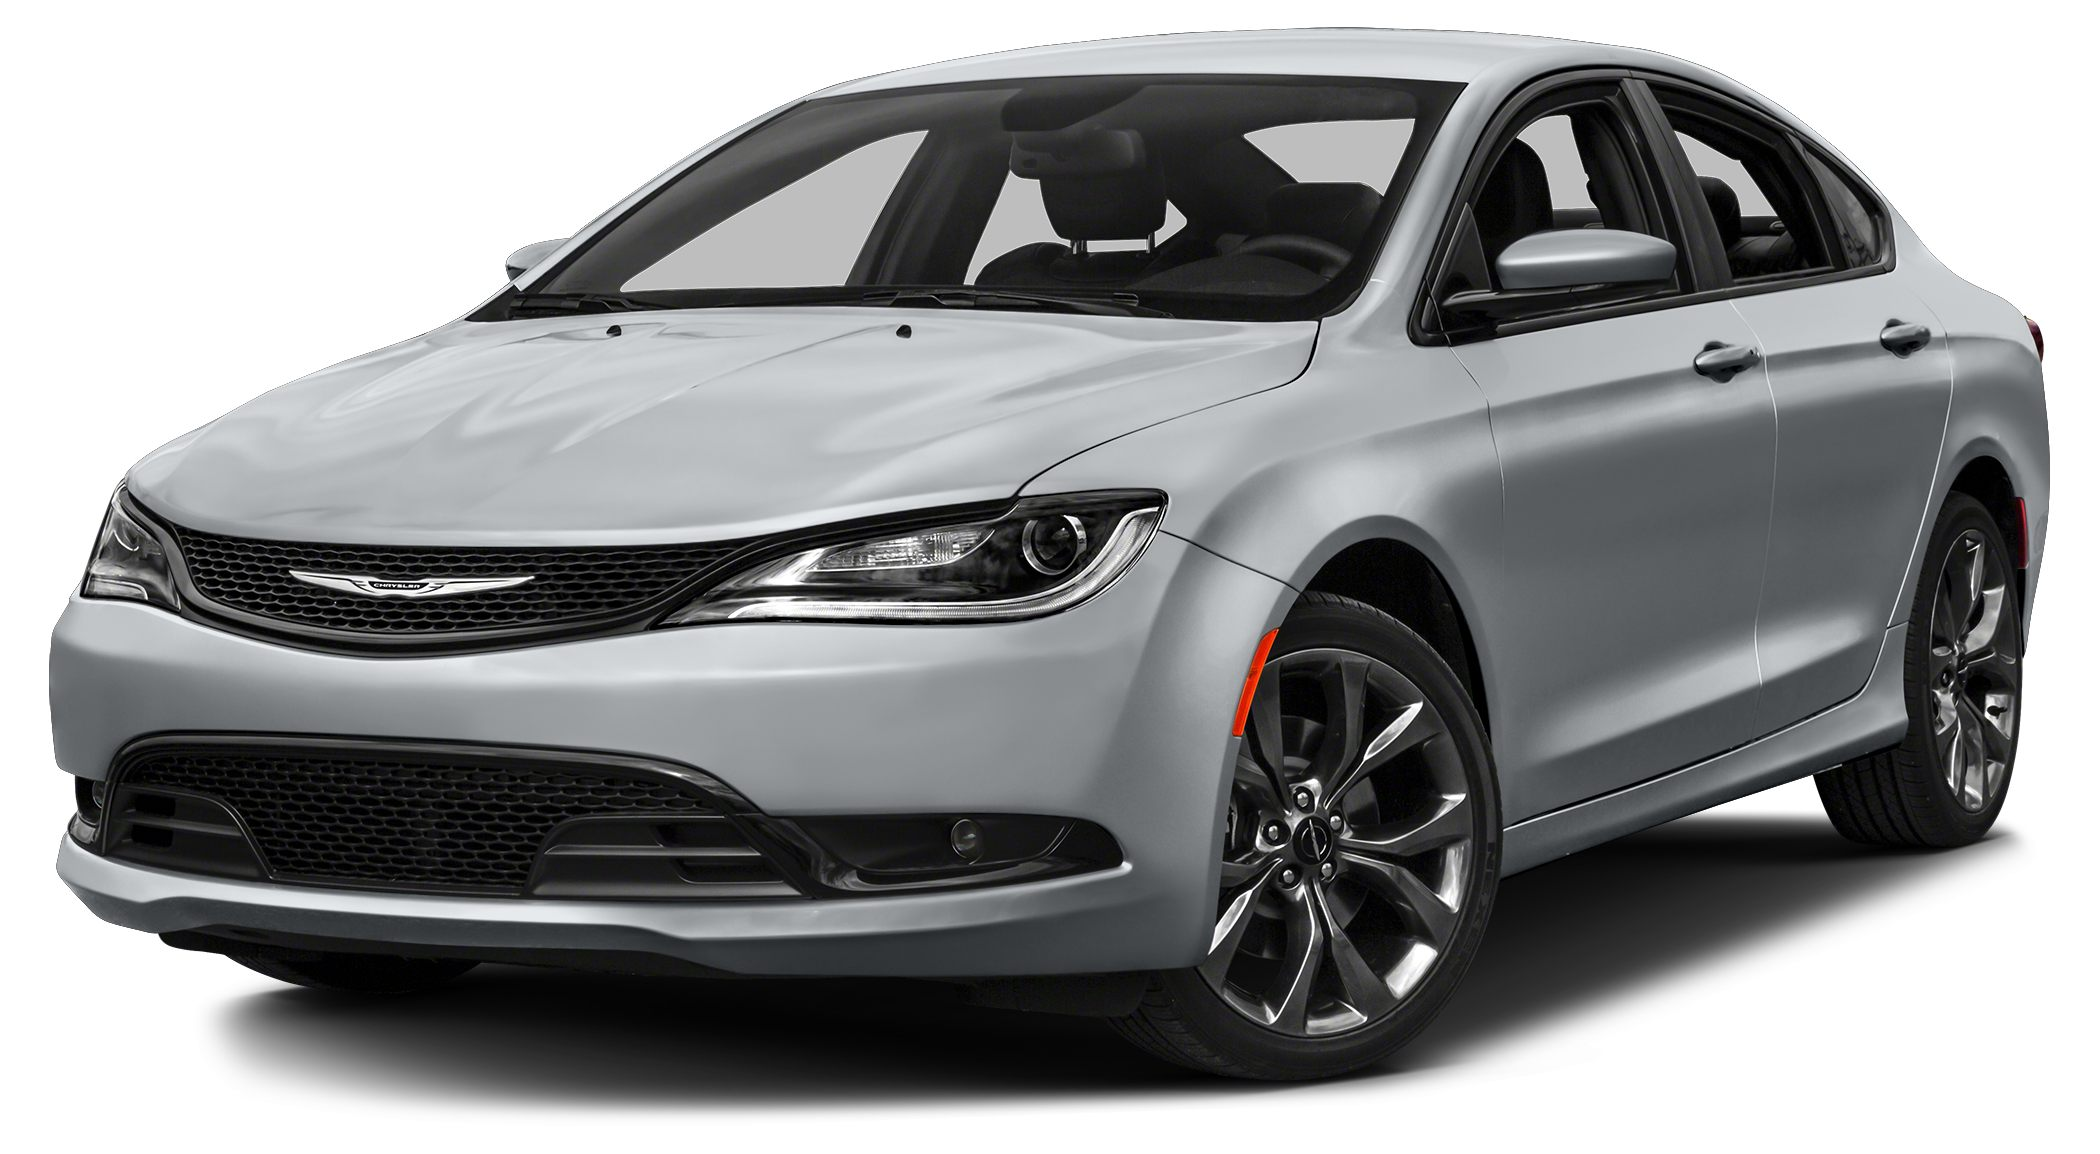 2015 Chrysler 200 LX 200 LX 4D Sedan 4 cyl 24L MPI SOHC 9-Speed 948TE Automatic FWD Billet S